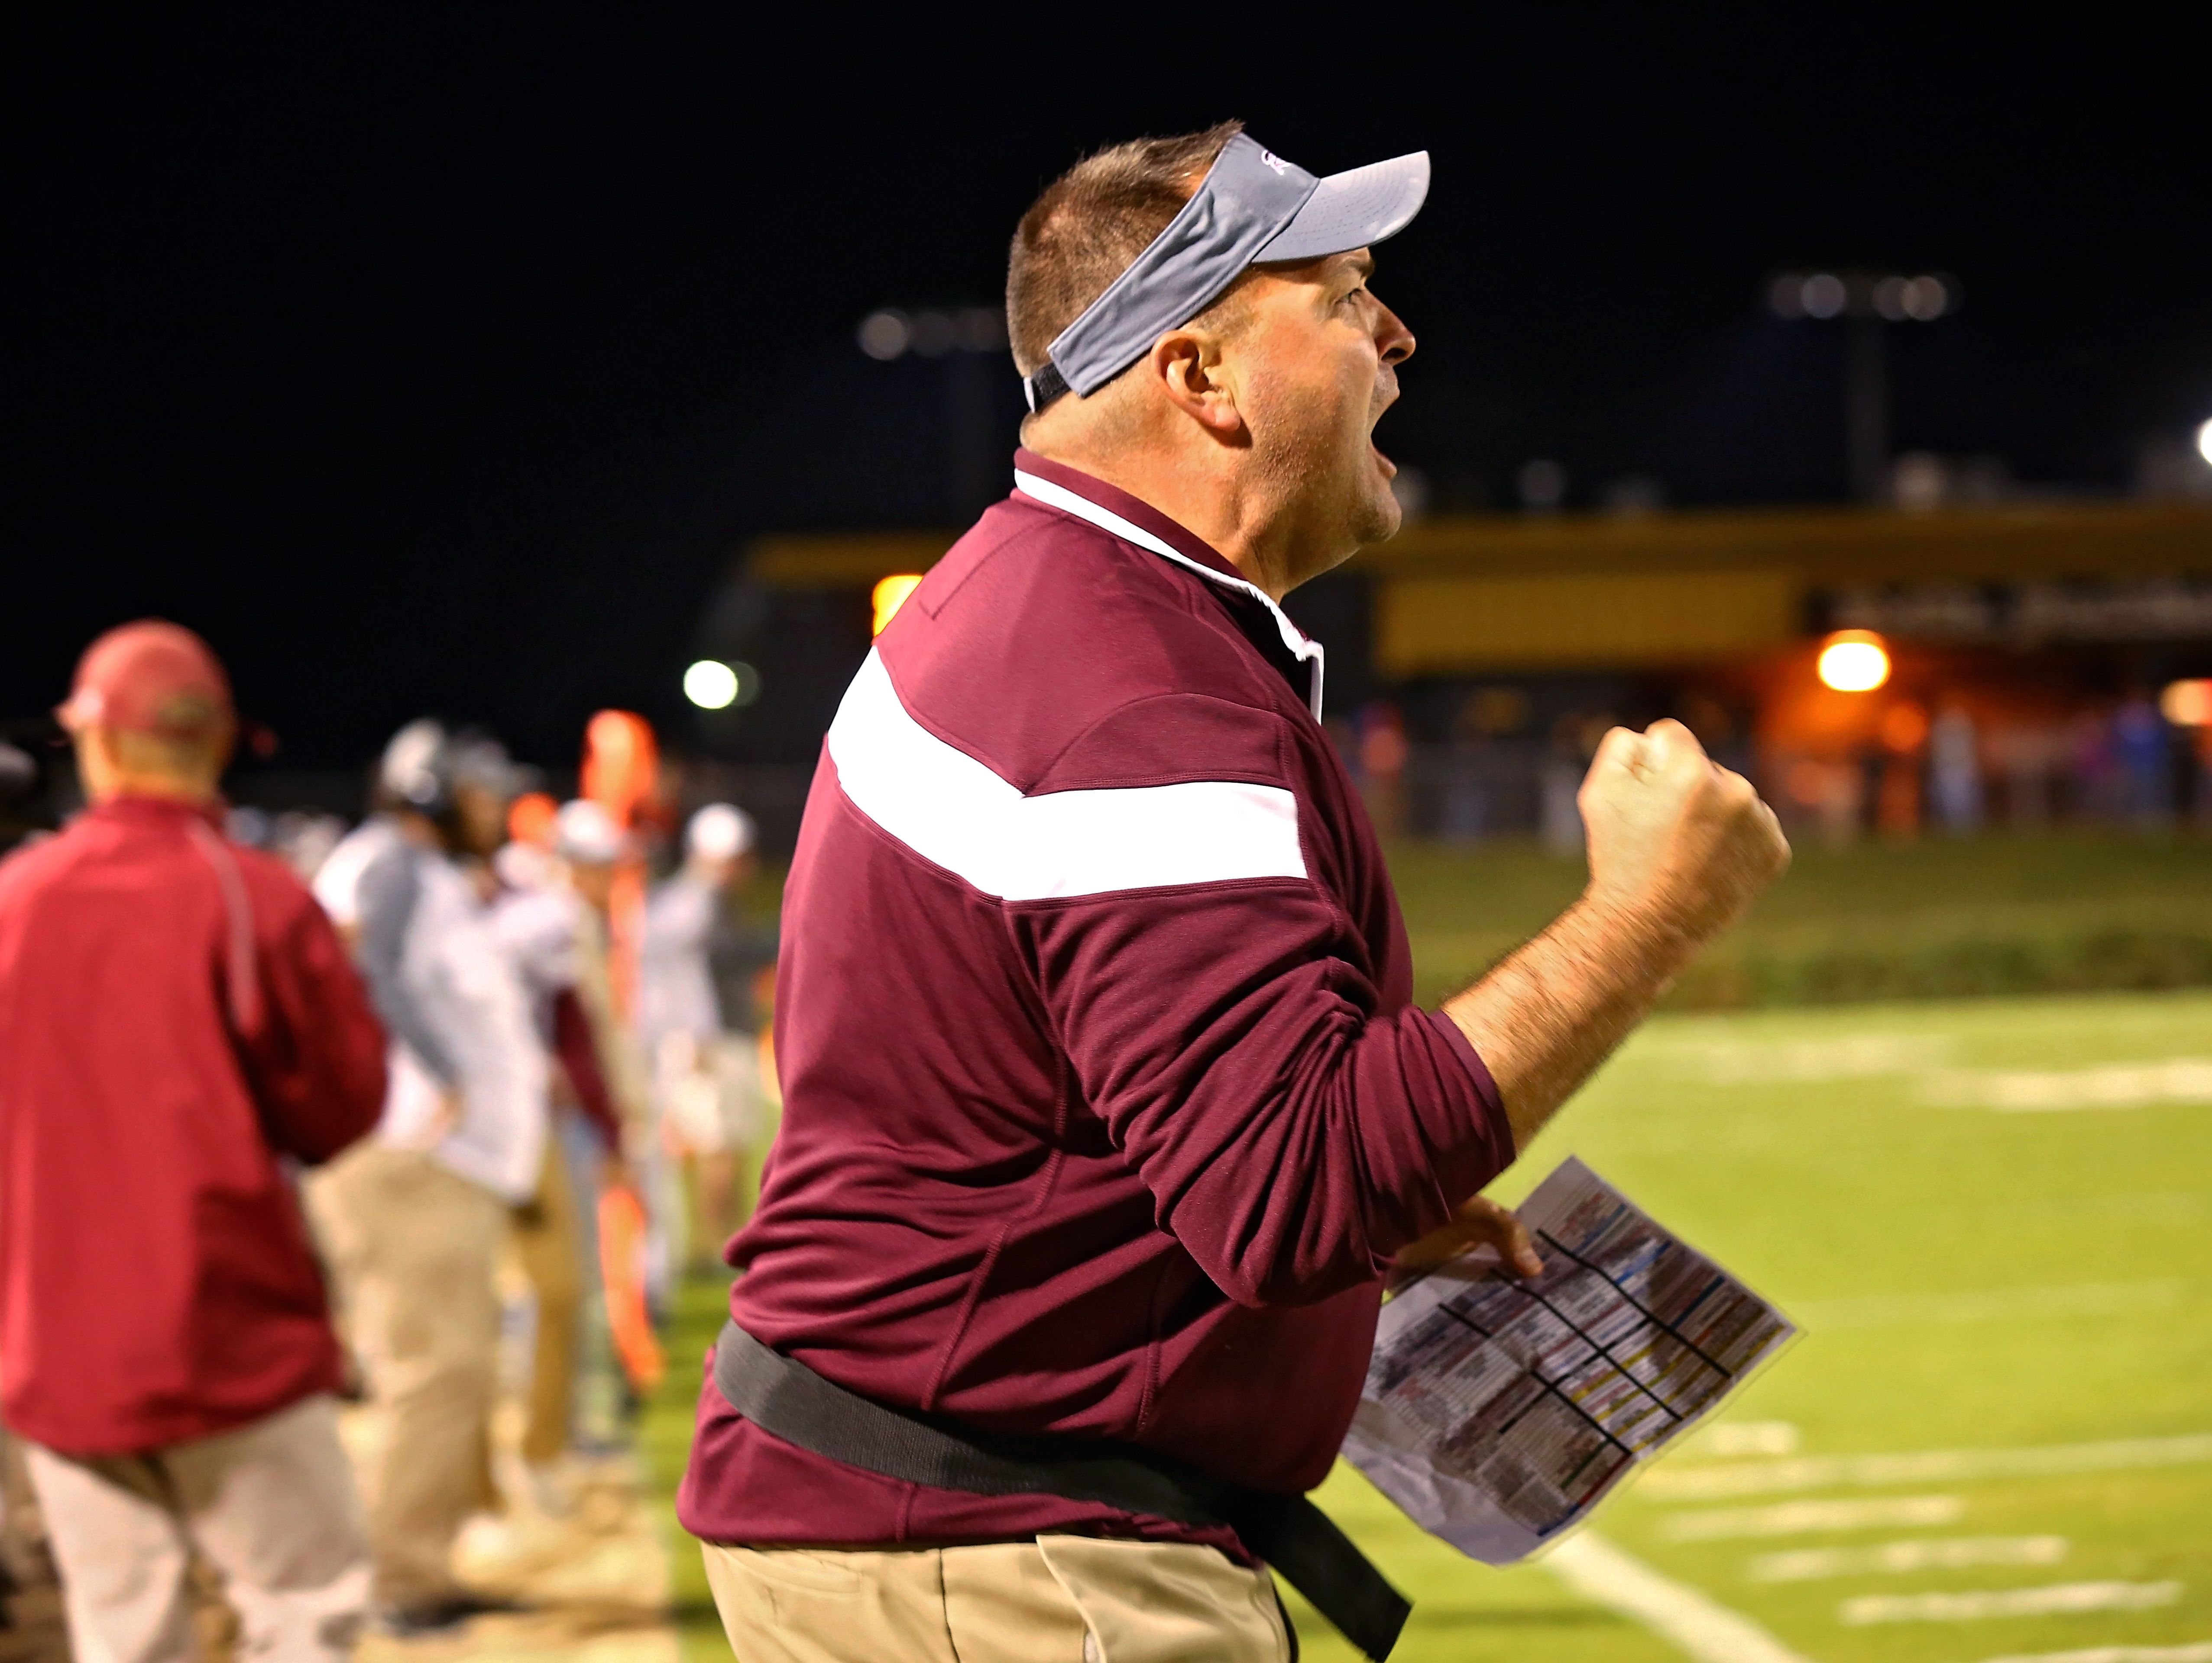 Franklin head coach Donnie Webb on the sidelines.